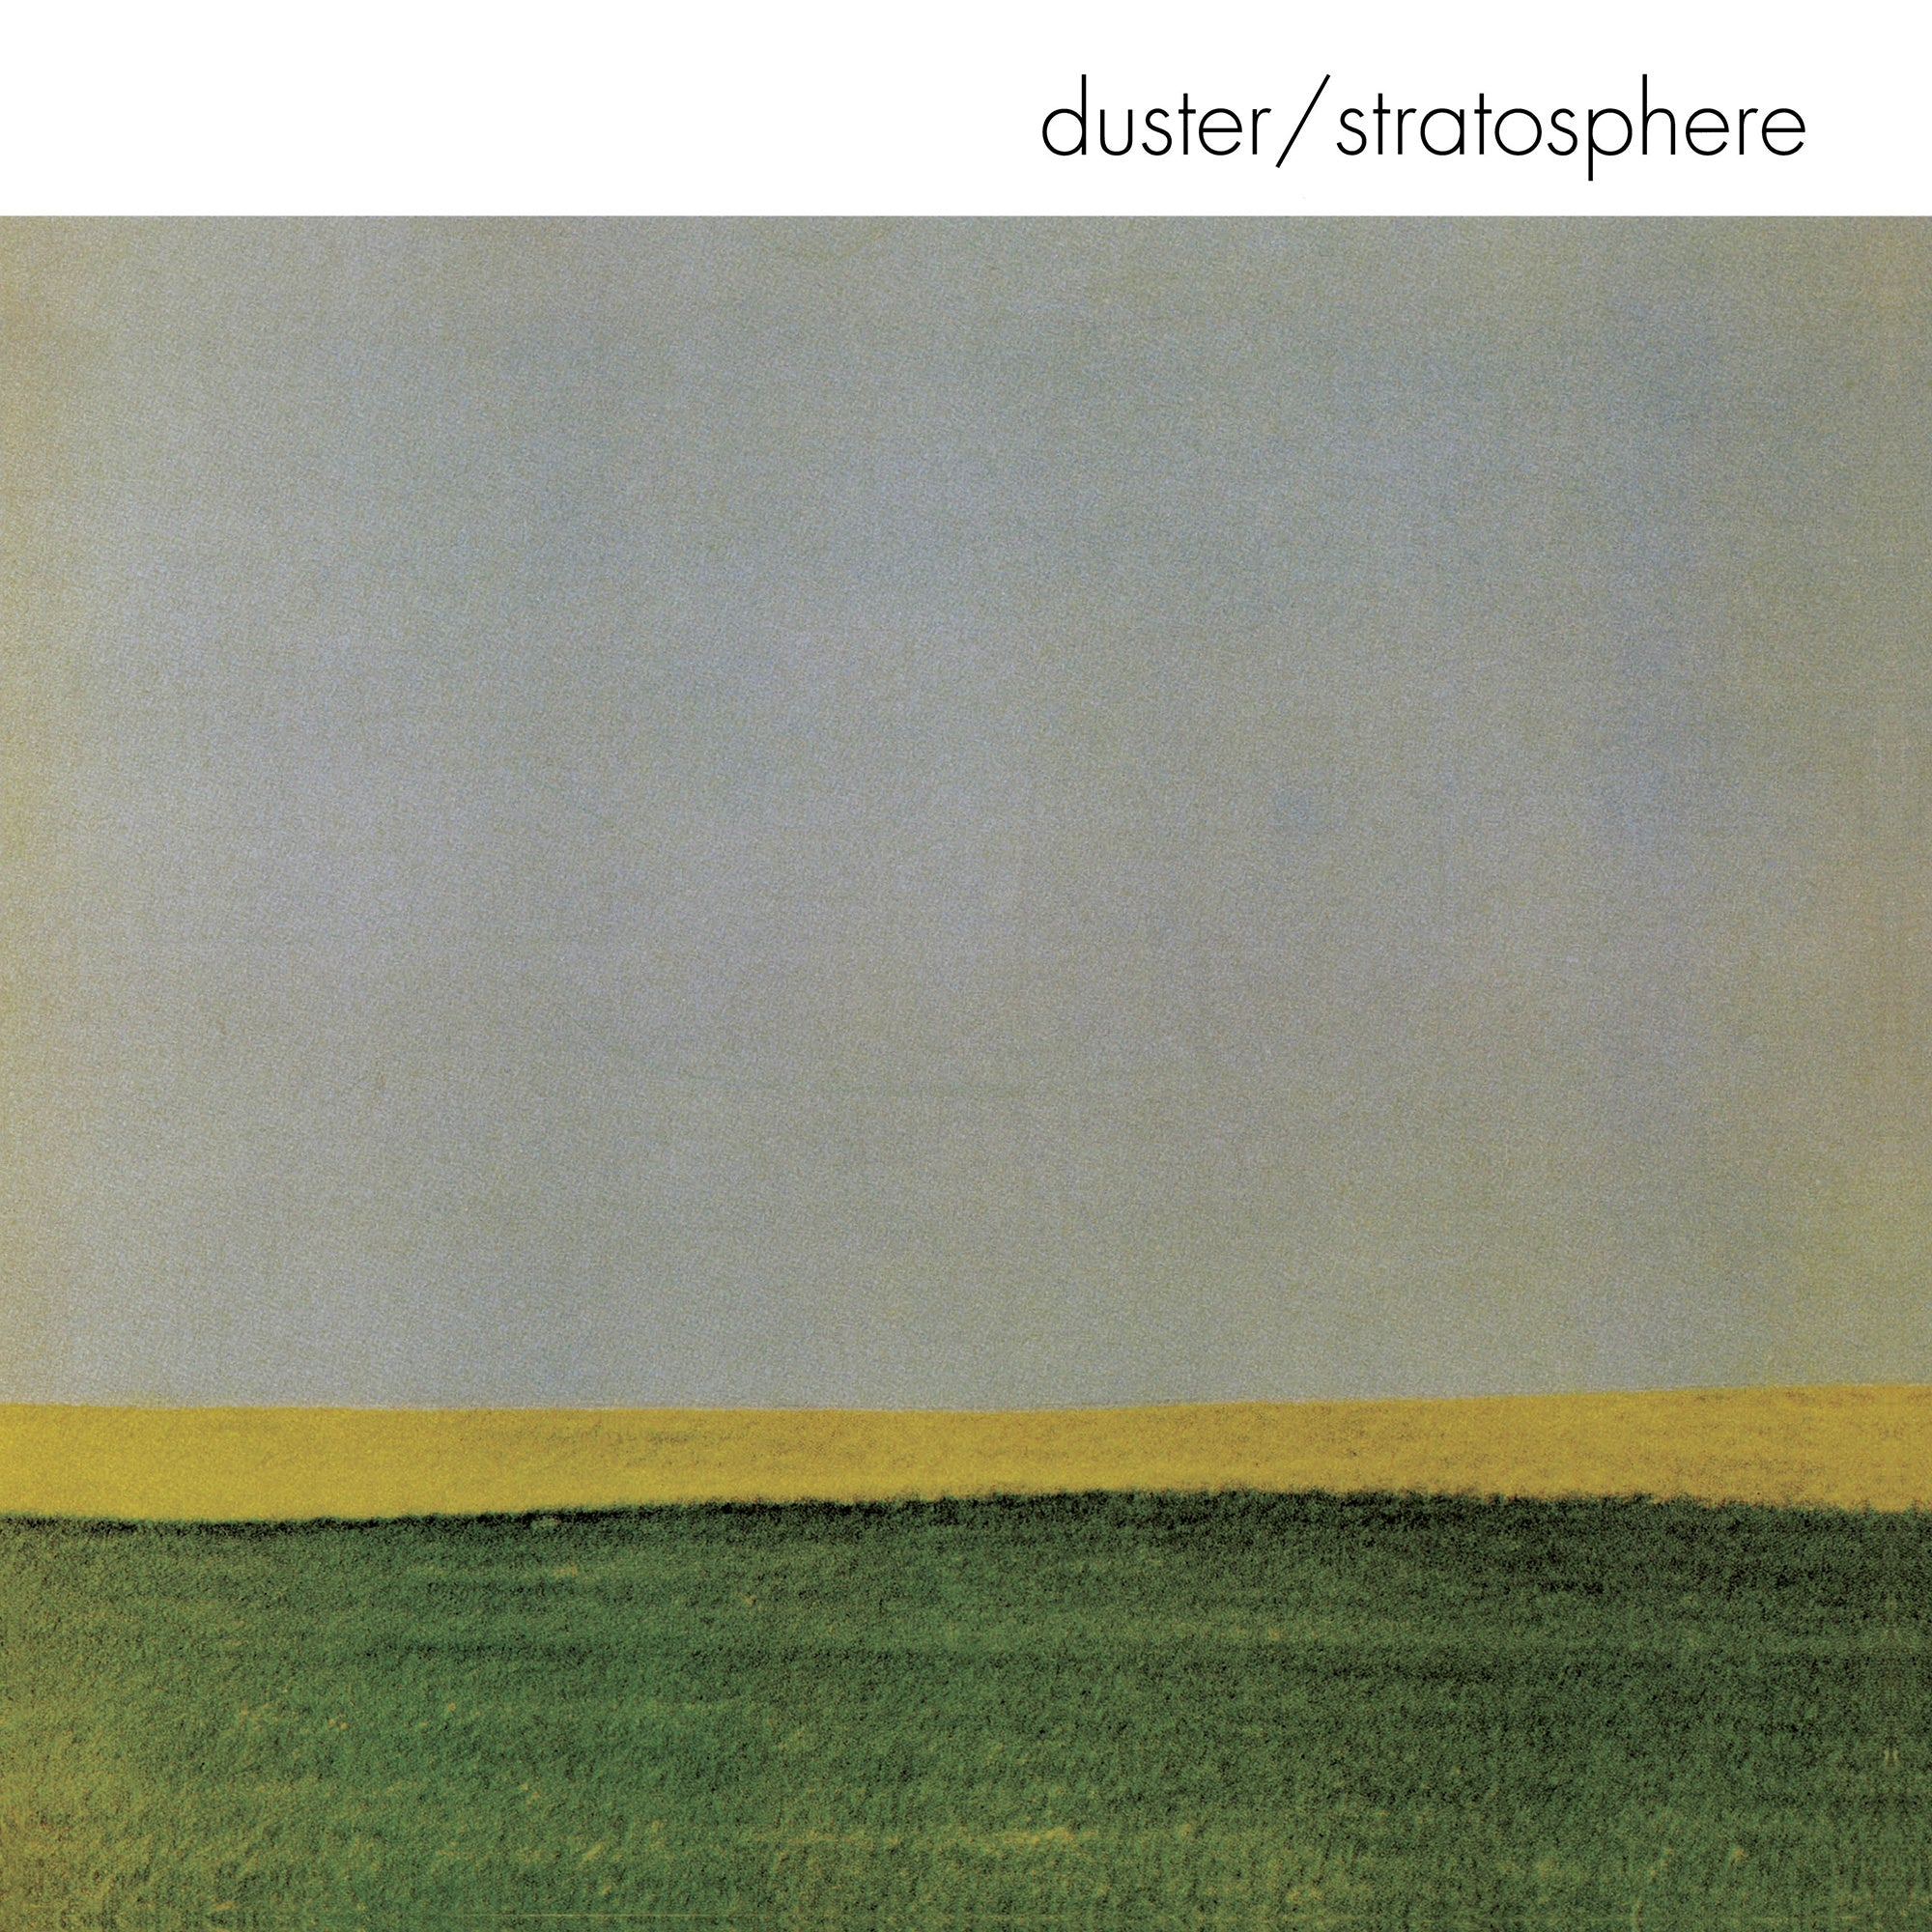 Duster - Stratosphere (1998) - New Lp Record 2019 USA Numero Black Vinyl - Indie Rock / Lo-Fi2